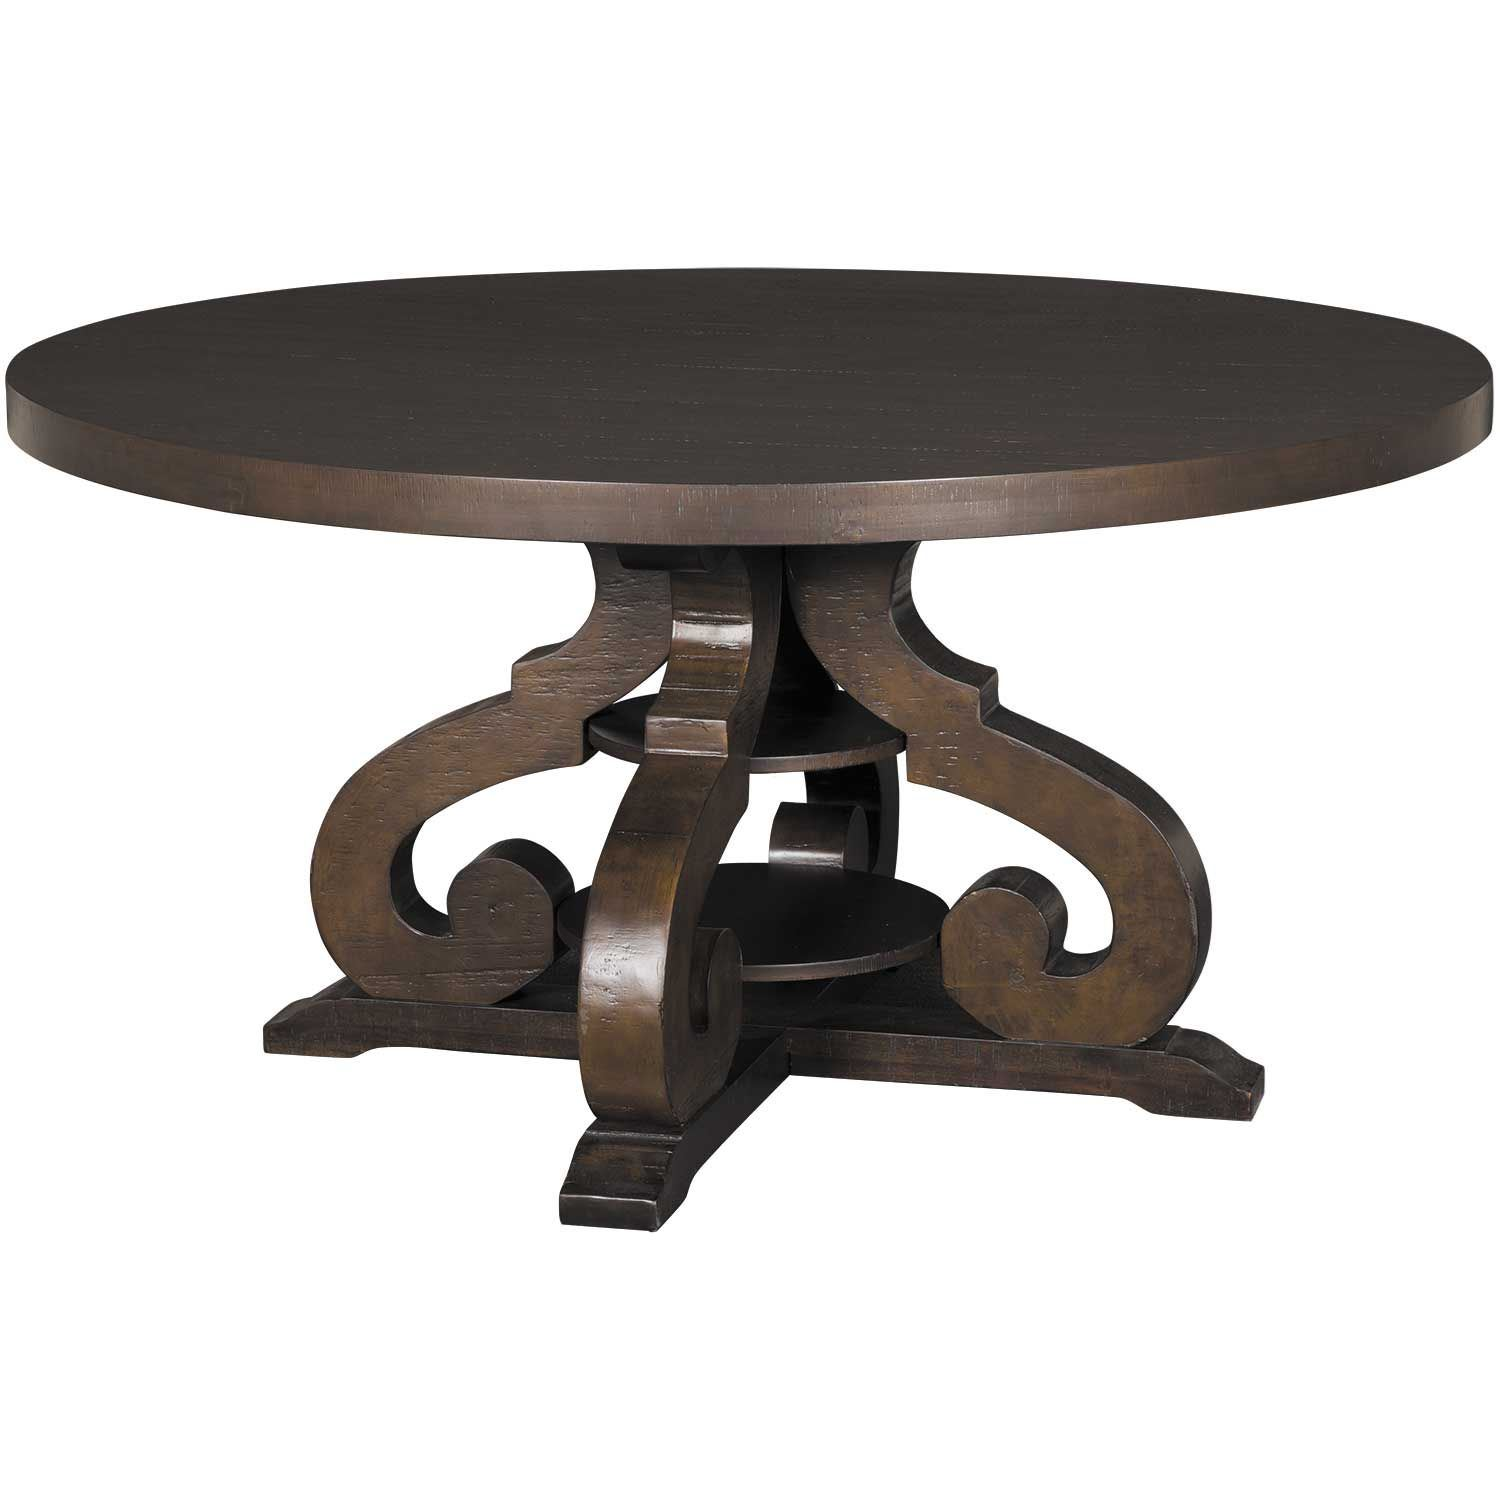 Picture of Sedona Round Dining Table